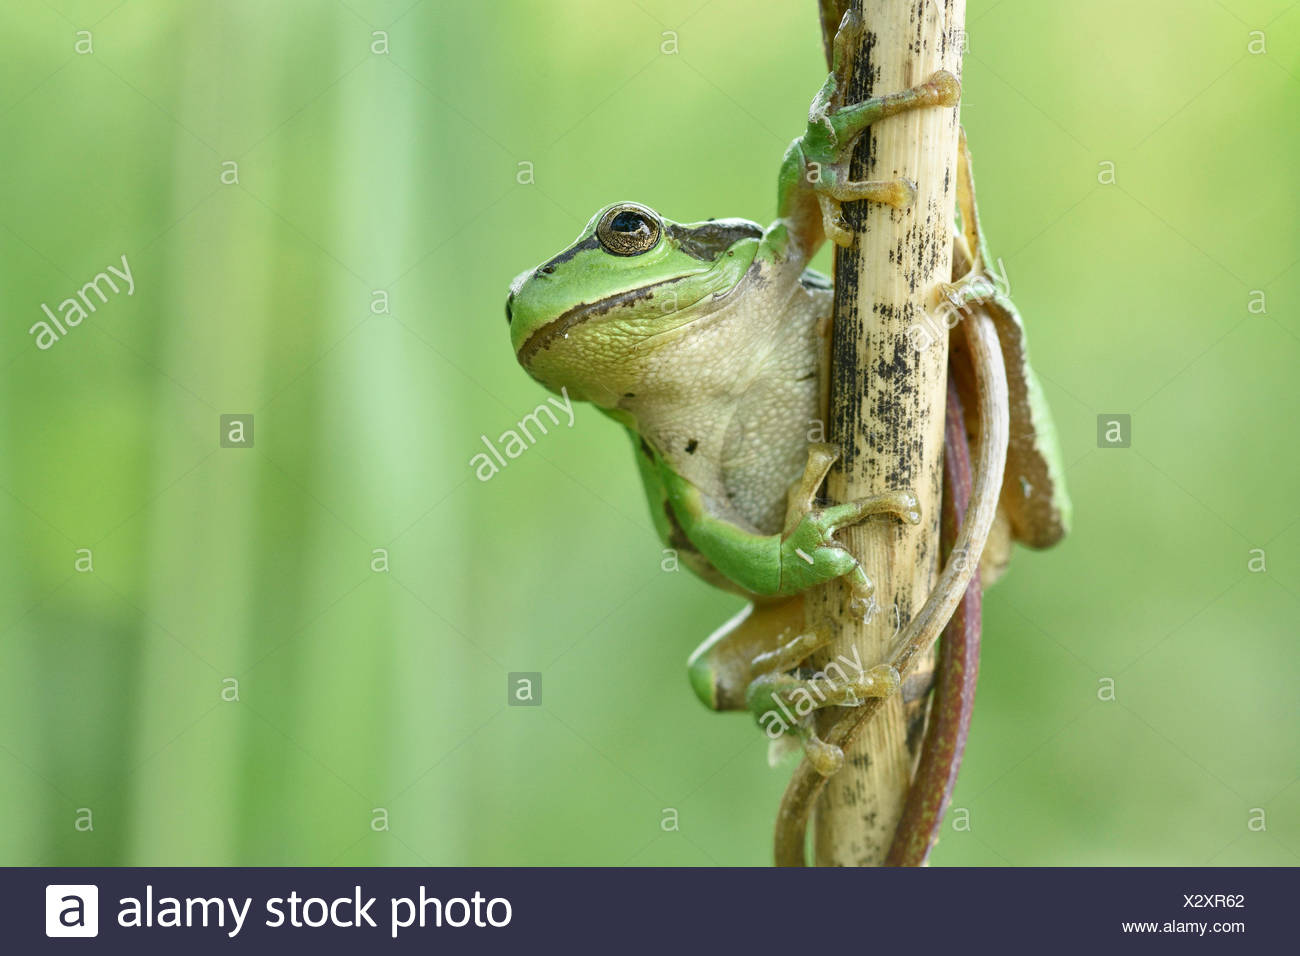 European tree frog (Hyla arborea) sits at reed stem,Biosphere Reserve Oberlausitzer Heide- und Teichlandschaft,Saxony,Germany - Stock Image